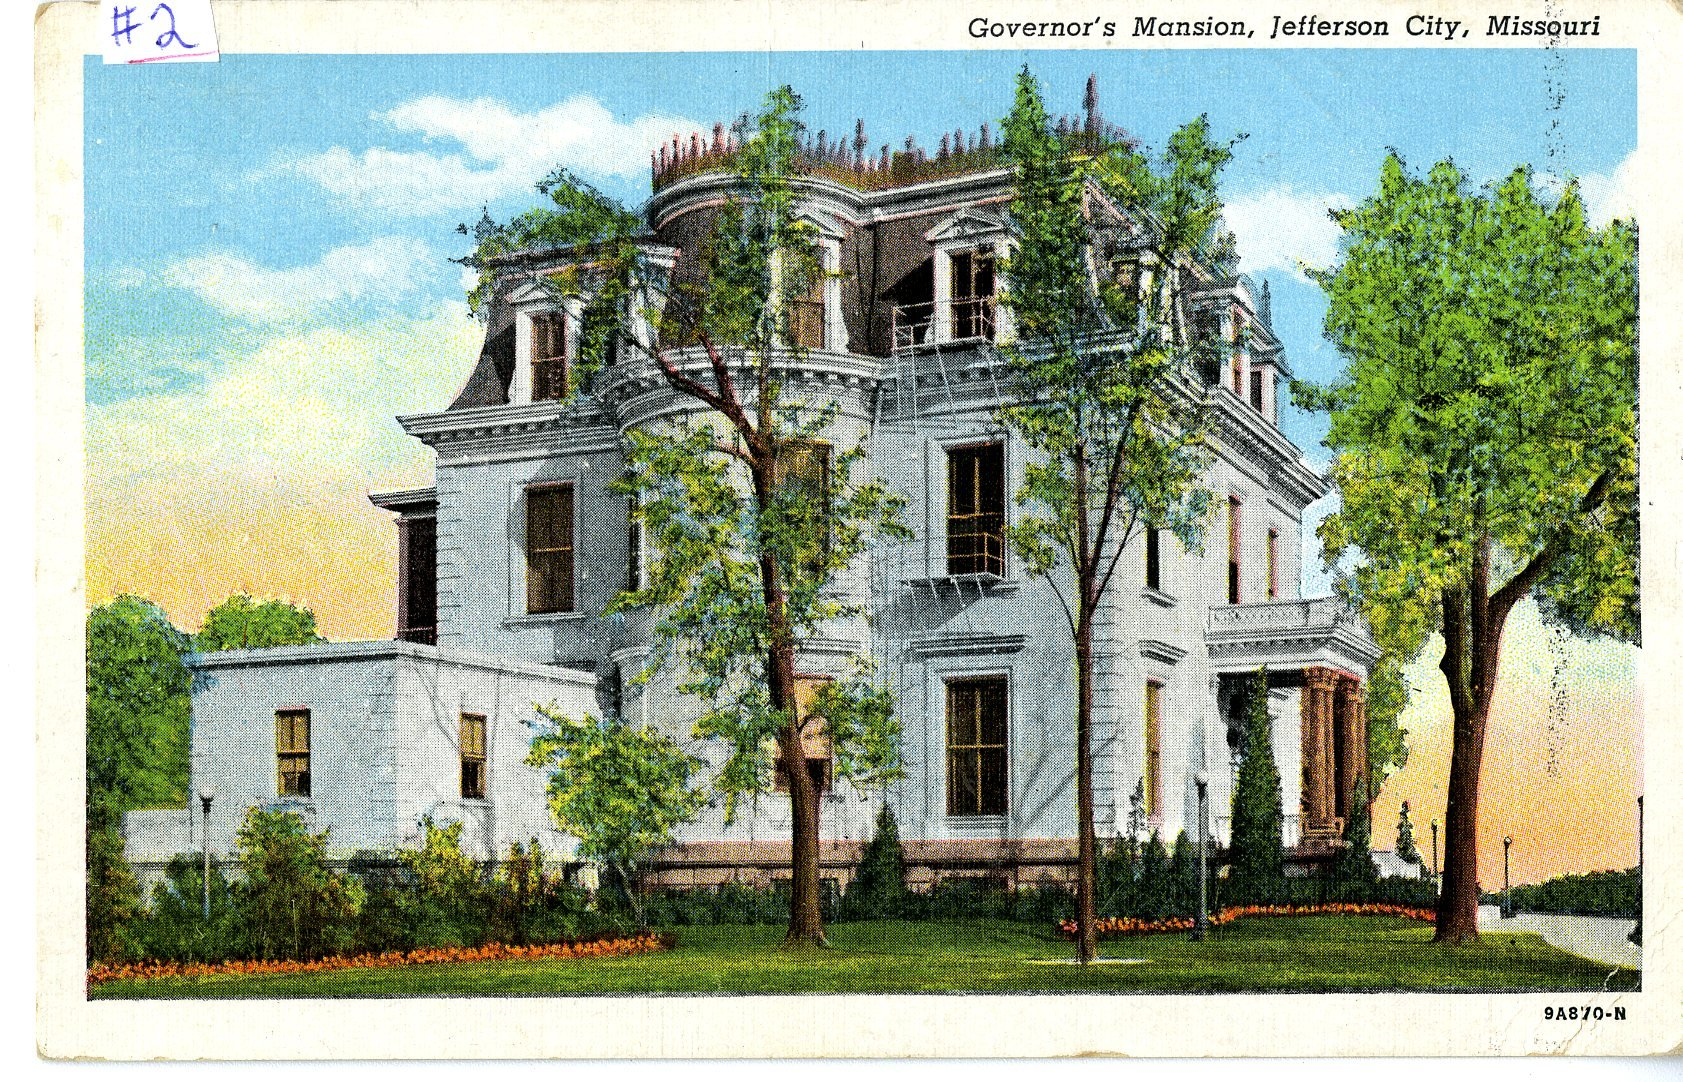 Postcard of the Missouri Governor's Mansion in Jefferson City c. 1945. Image courtesy of the Missouri State Museum